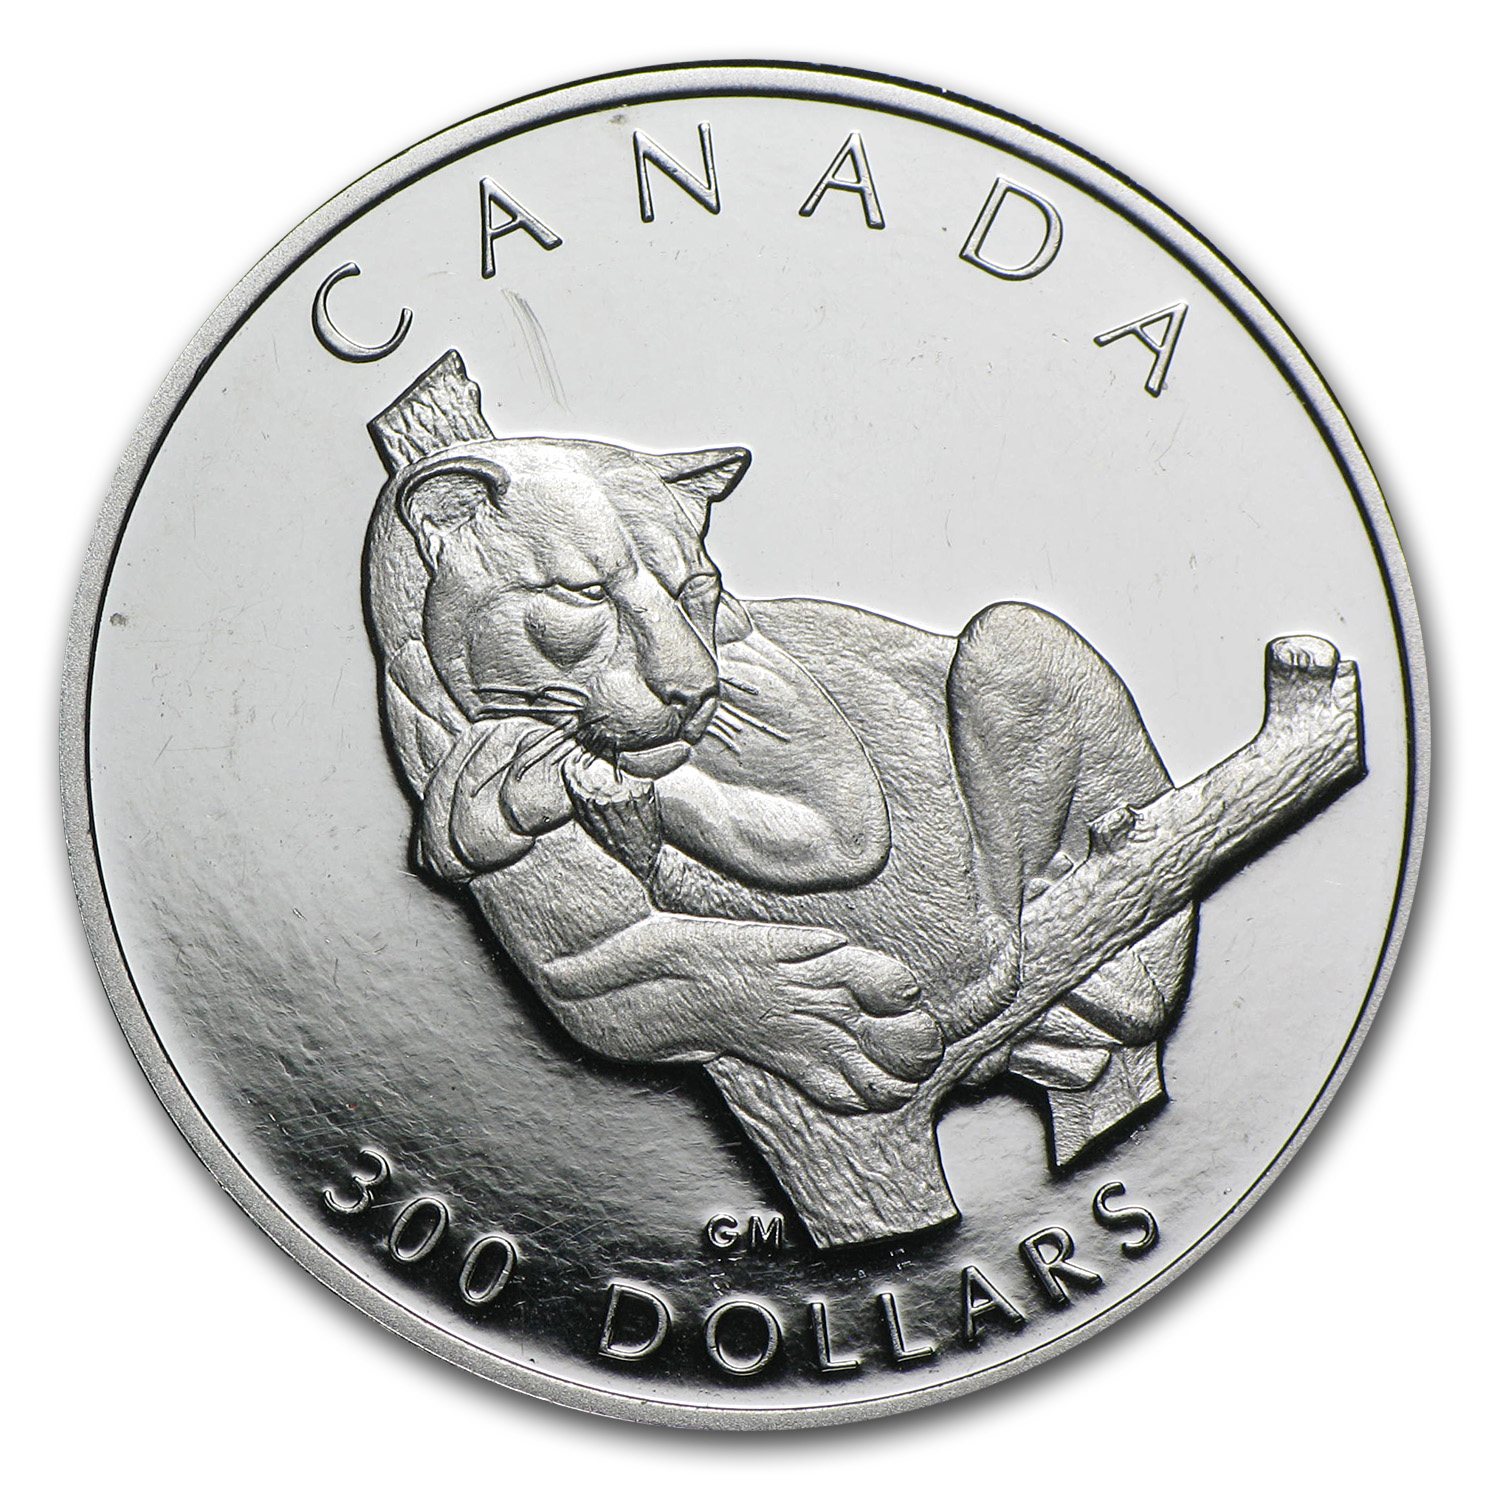 1992 Canada 1 oz Platinum Cougar $300 (Scruffy)